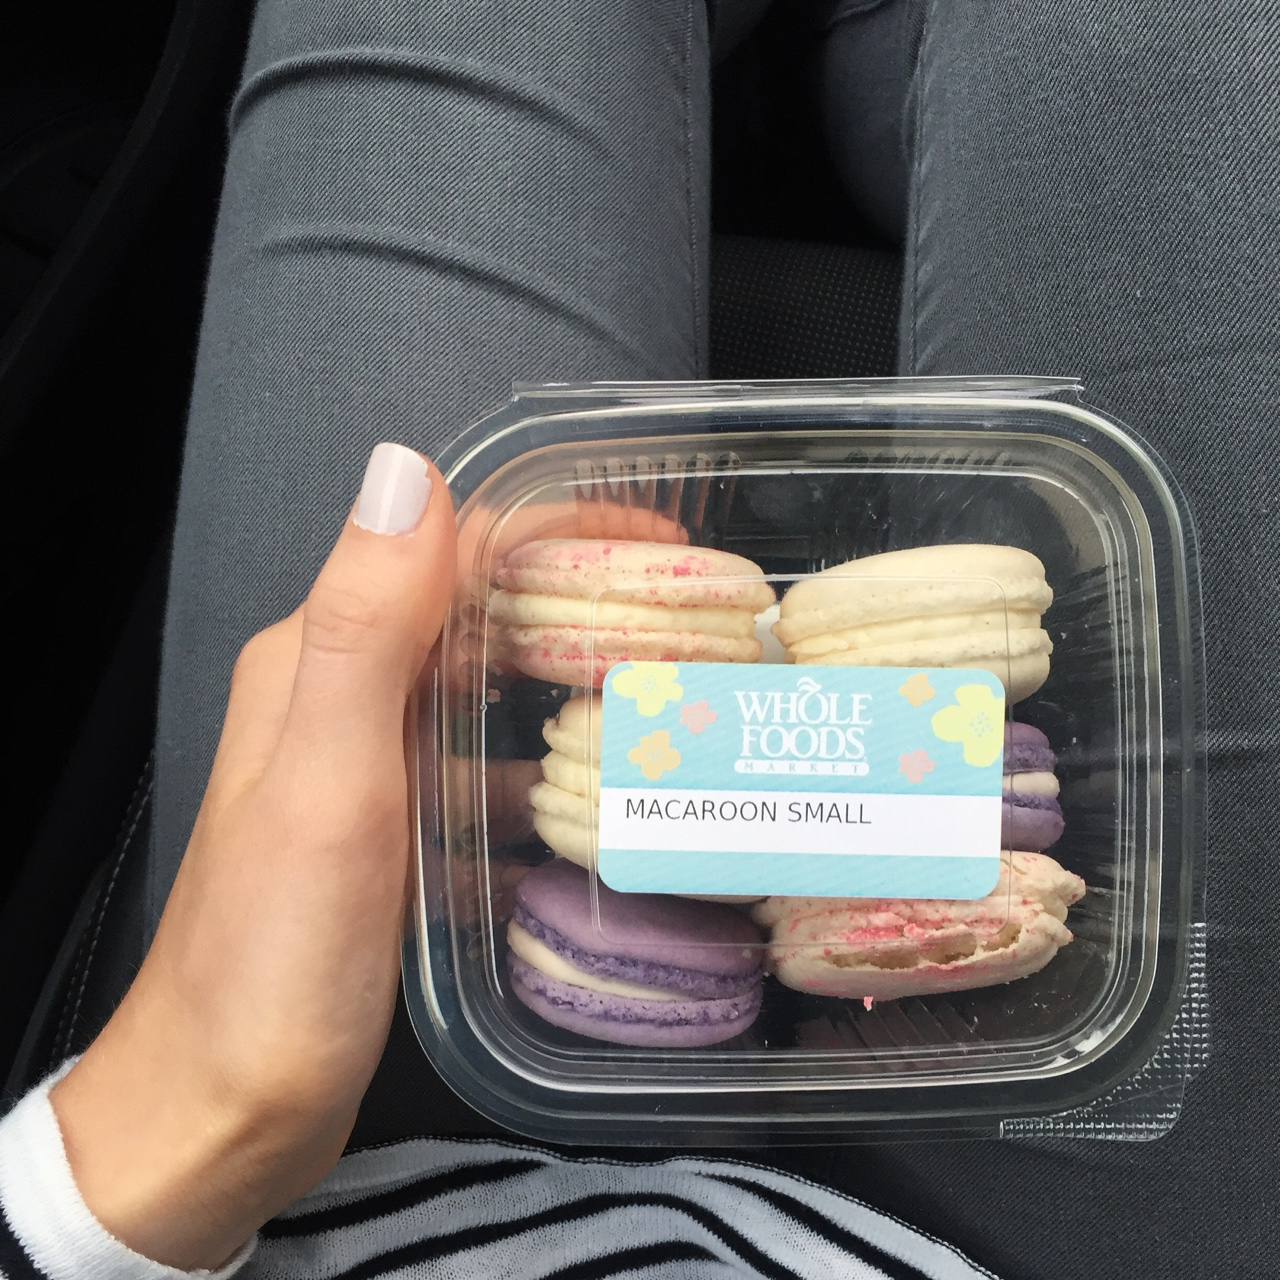 Macaroons to go! Whole Foods macaroons are little bits of joy! I love the different selection of flavours- my favourites are vanilla, peach & strawberry, lavender (which tastes like parma violets!) and champagne! S H E